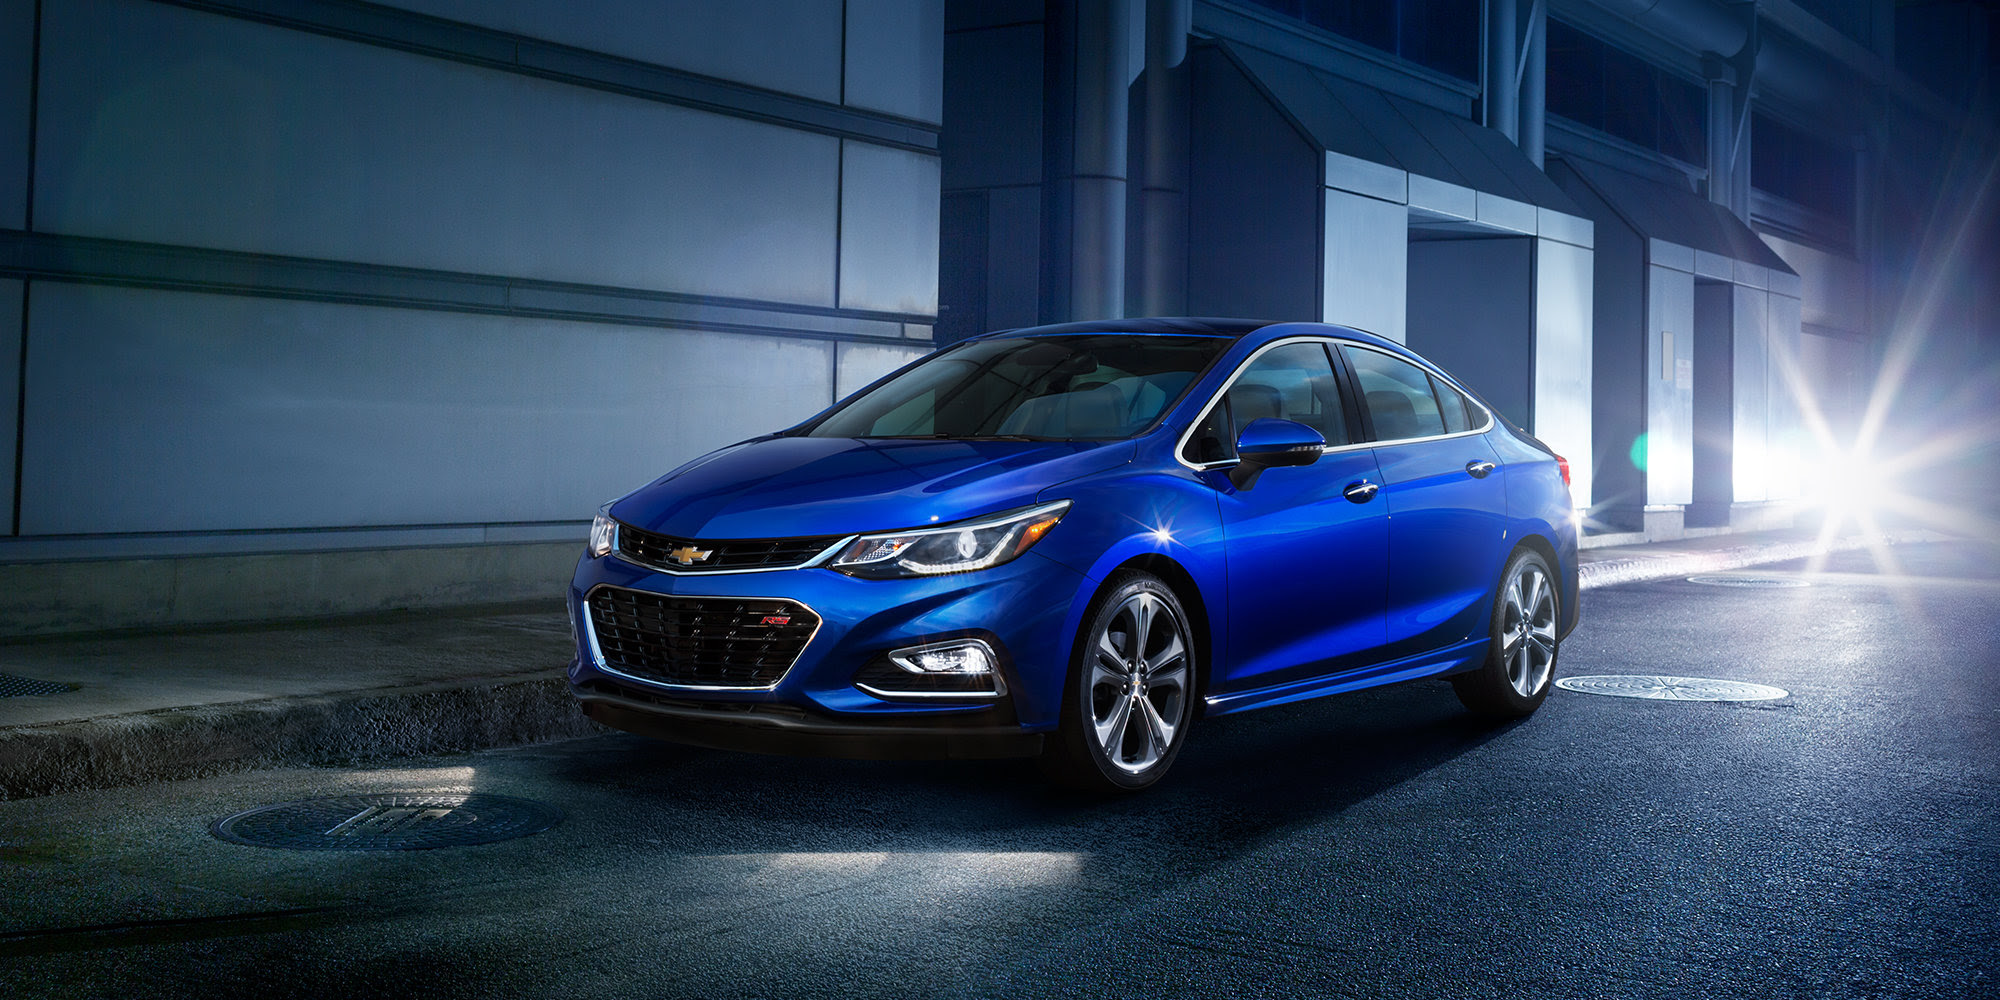 2019 Chevrolet Cruze 4k hd blue color wallpaper  Cars 4k Wallpaper  Latest Cars 20182019